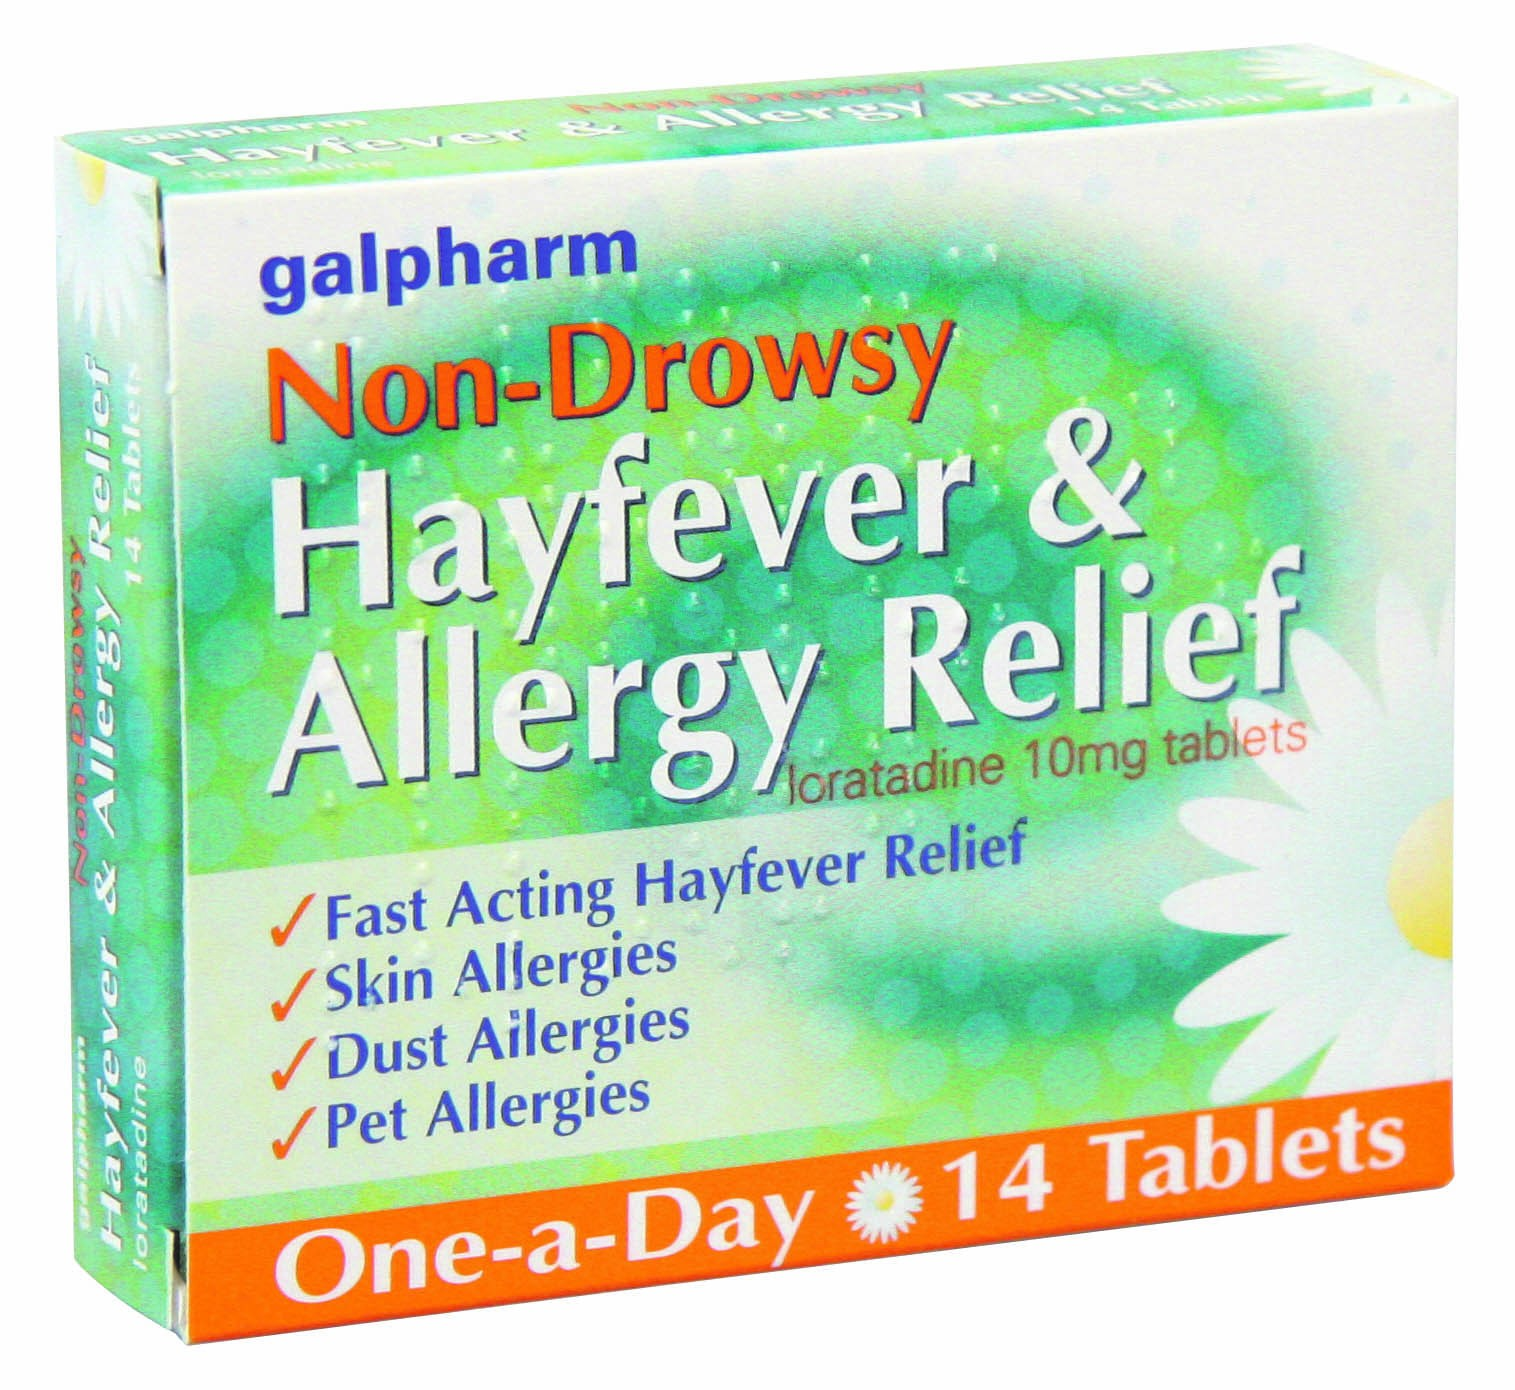 GALPHARM HAYFEVER & ALLERGY LORATADINE TABLETS 14 PACK